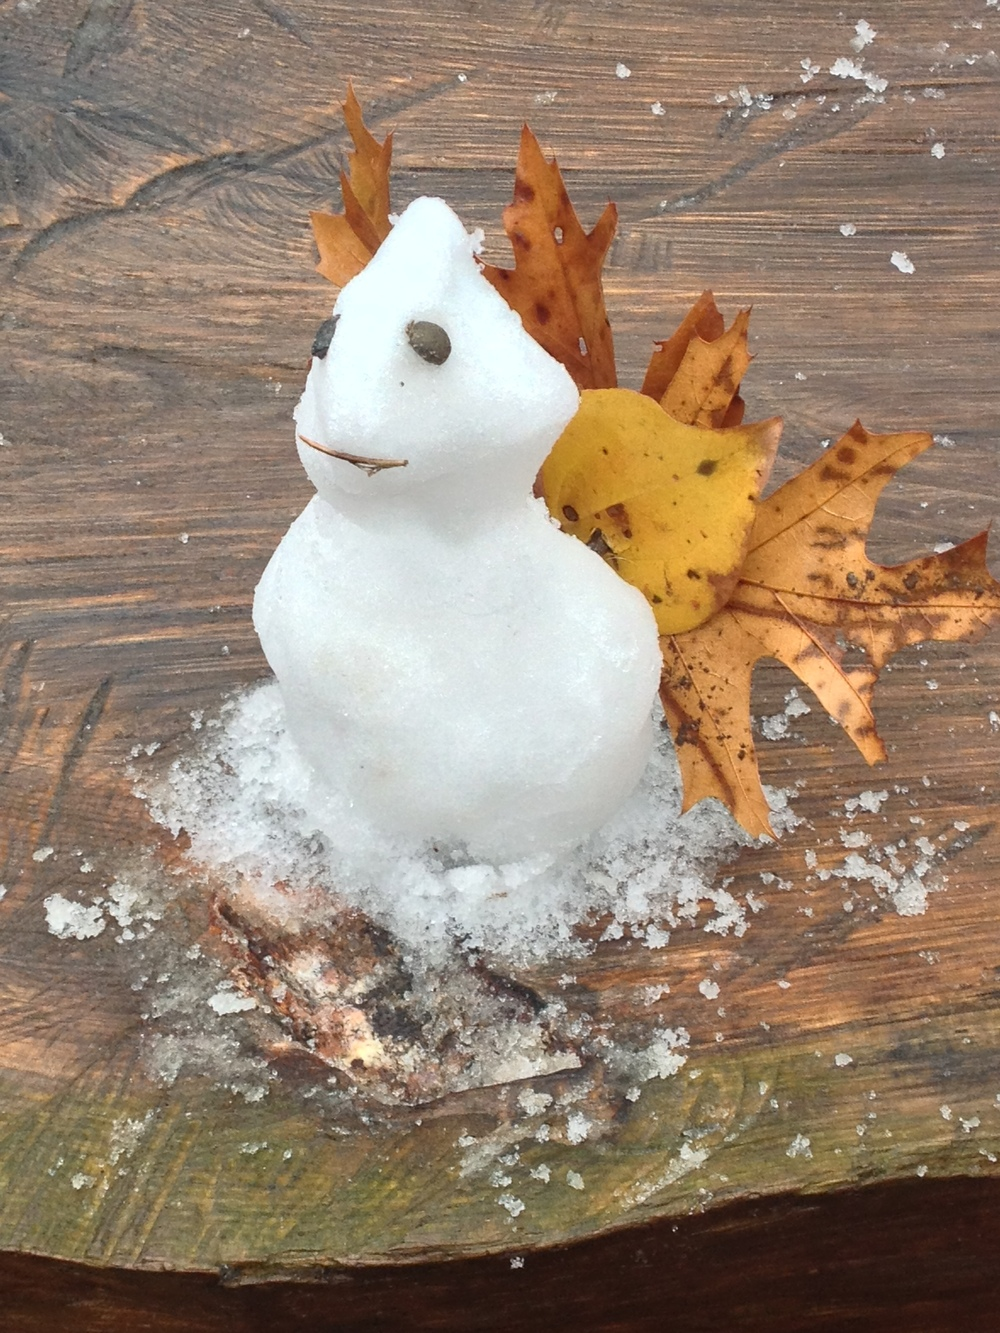 I MADE MY WIFE A TURKEY SNOWMAN. SHE THOUGHT IT WAS CUTE.